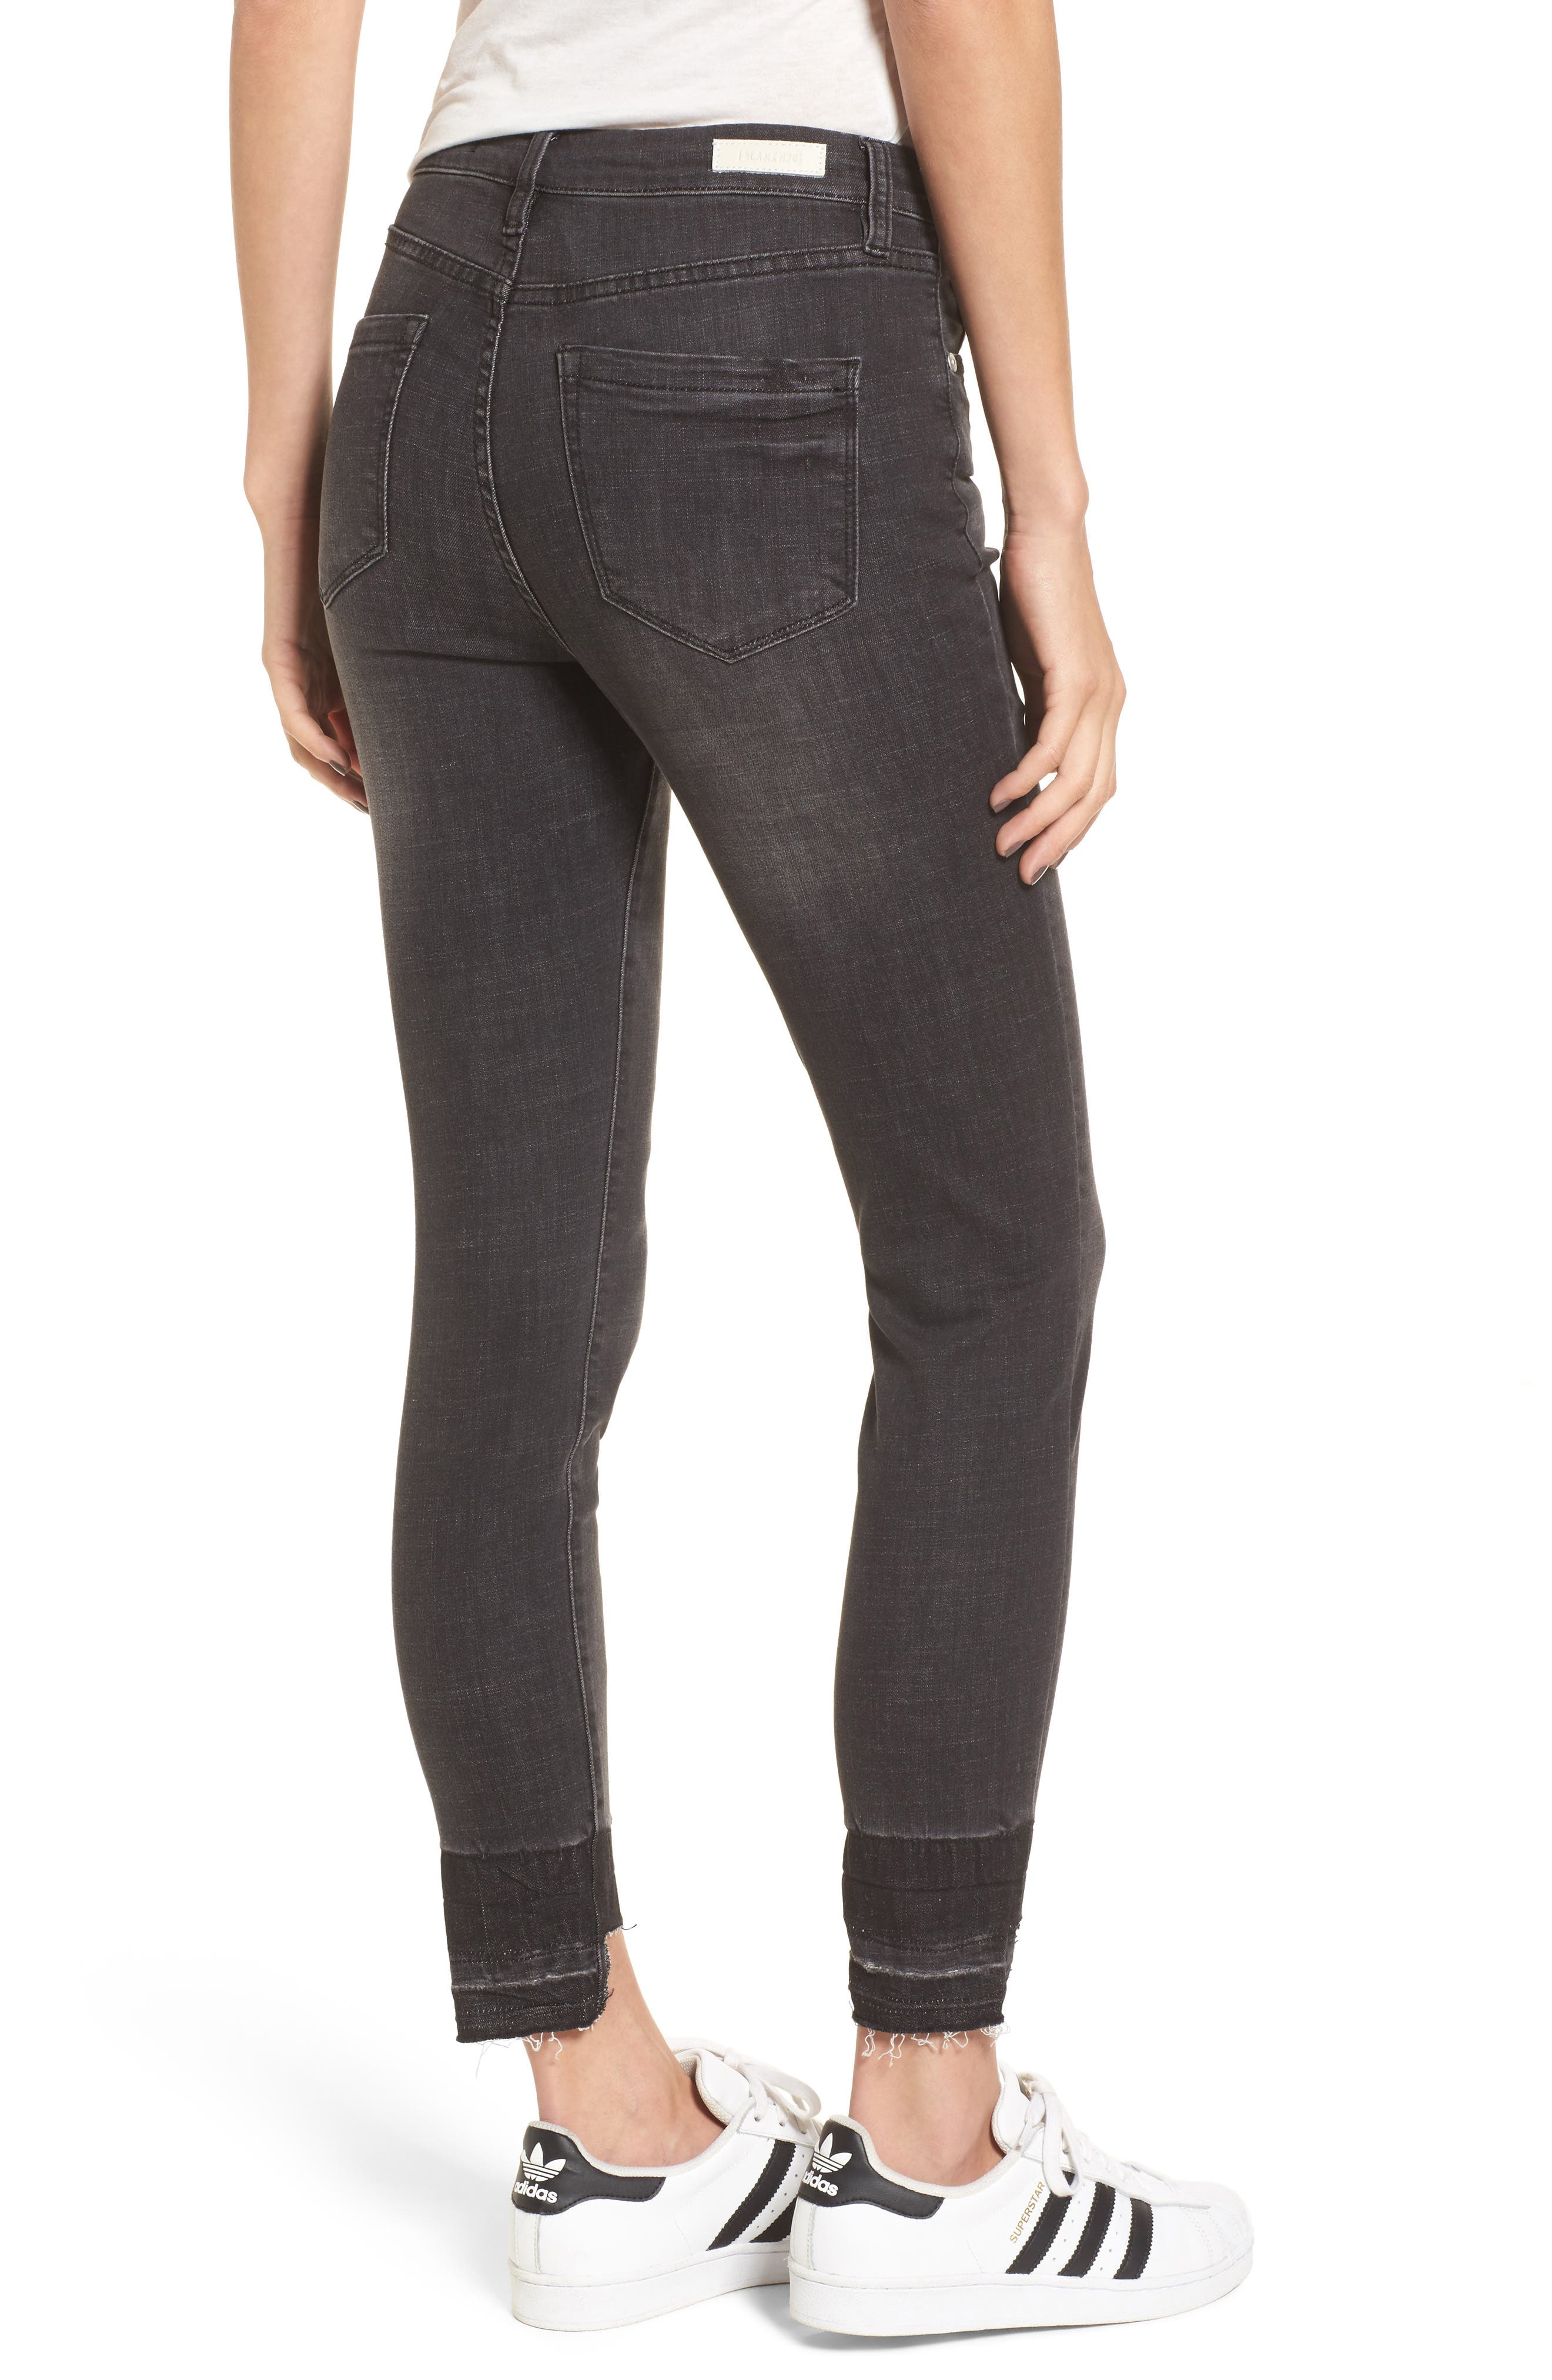 Cry Baby Release Hem Skinny Jeans,                             Alternate thumbnail 2, color,                             001